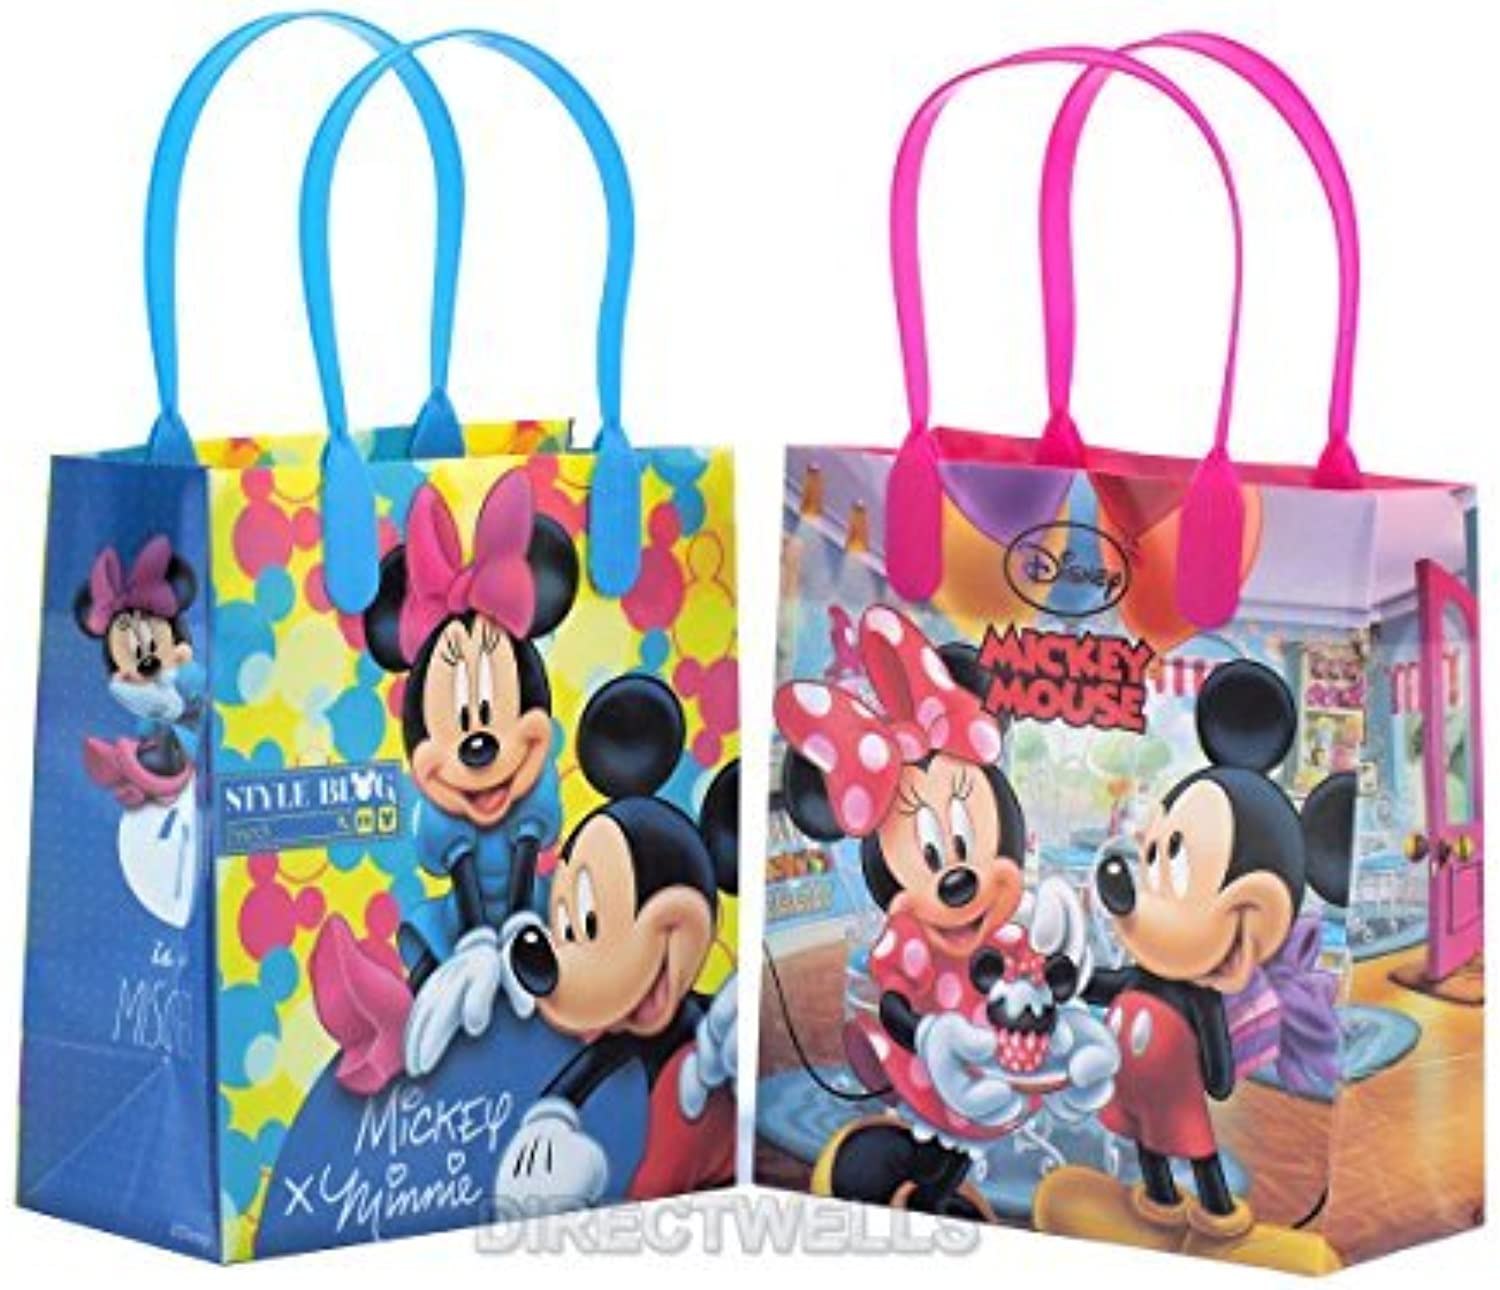 Disney Mickey and Minnie Mouse Reusable Premium Party Favor Goodie Small Gift Bags 12 (12 Bags) by Disney